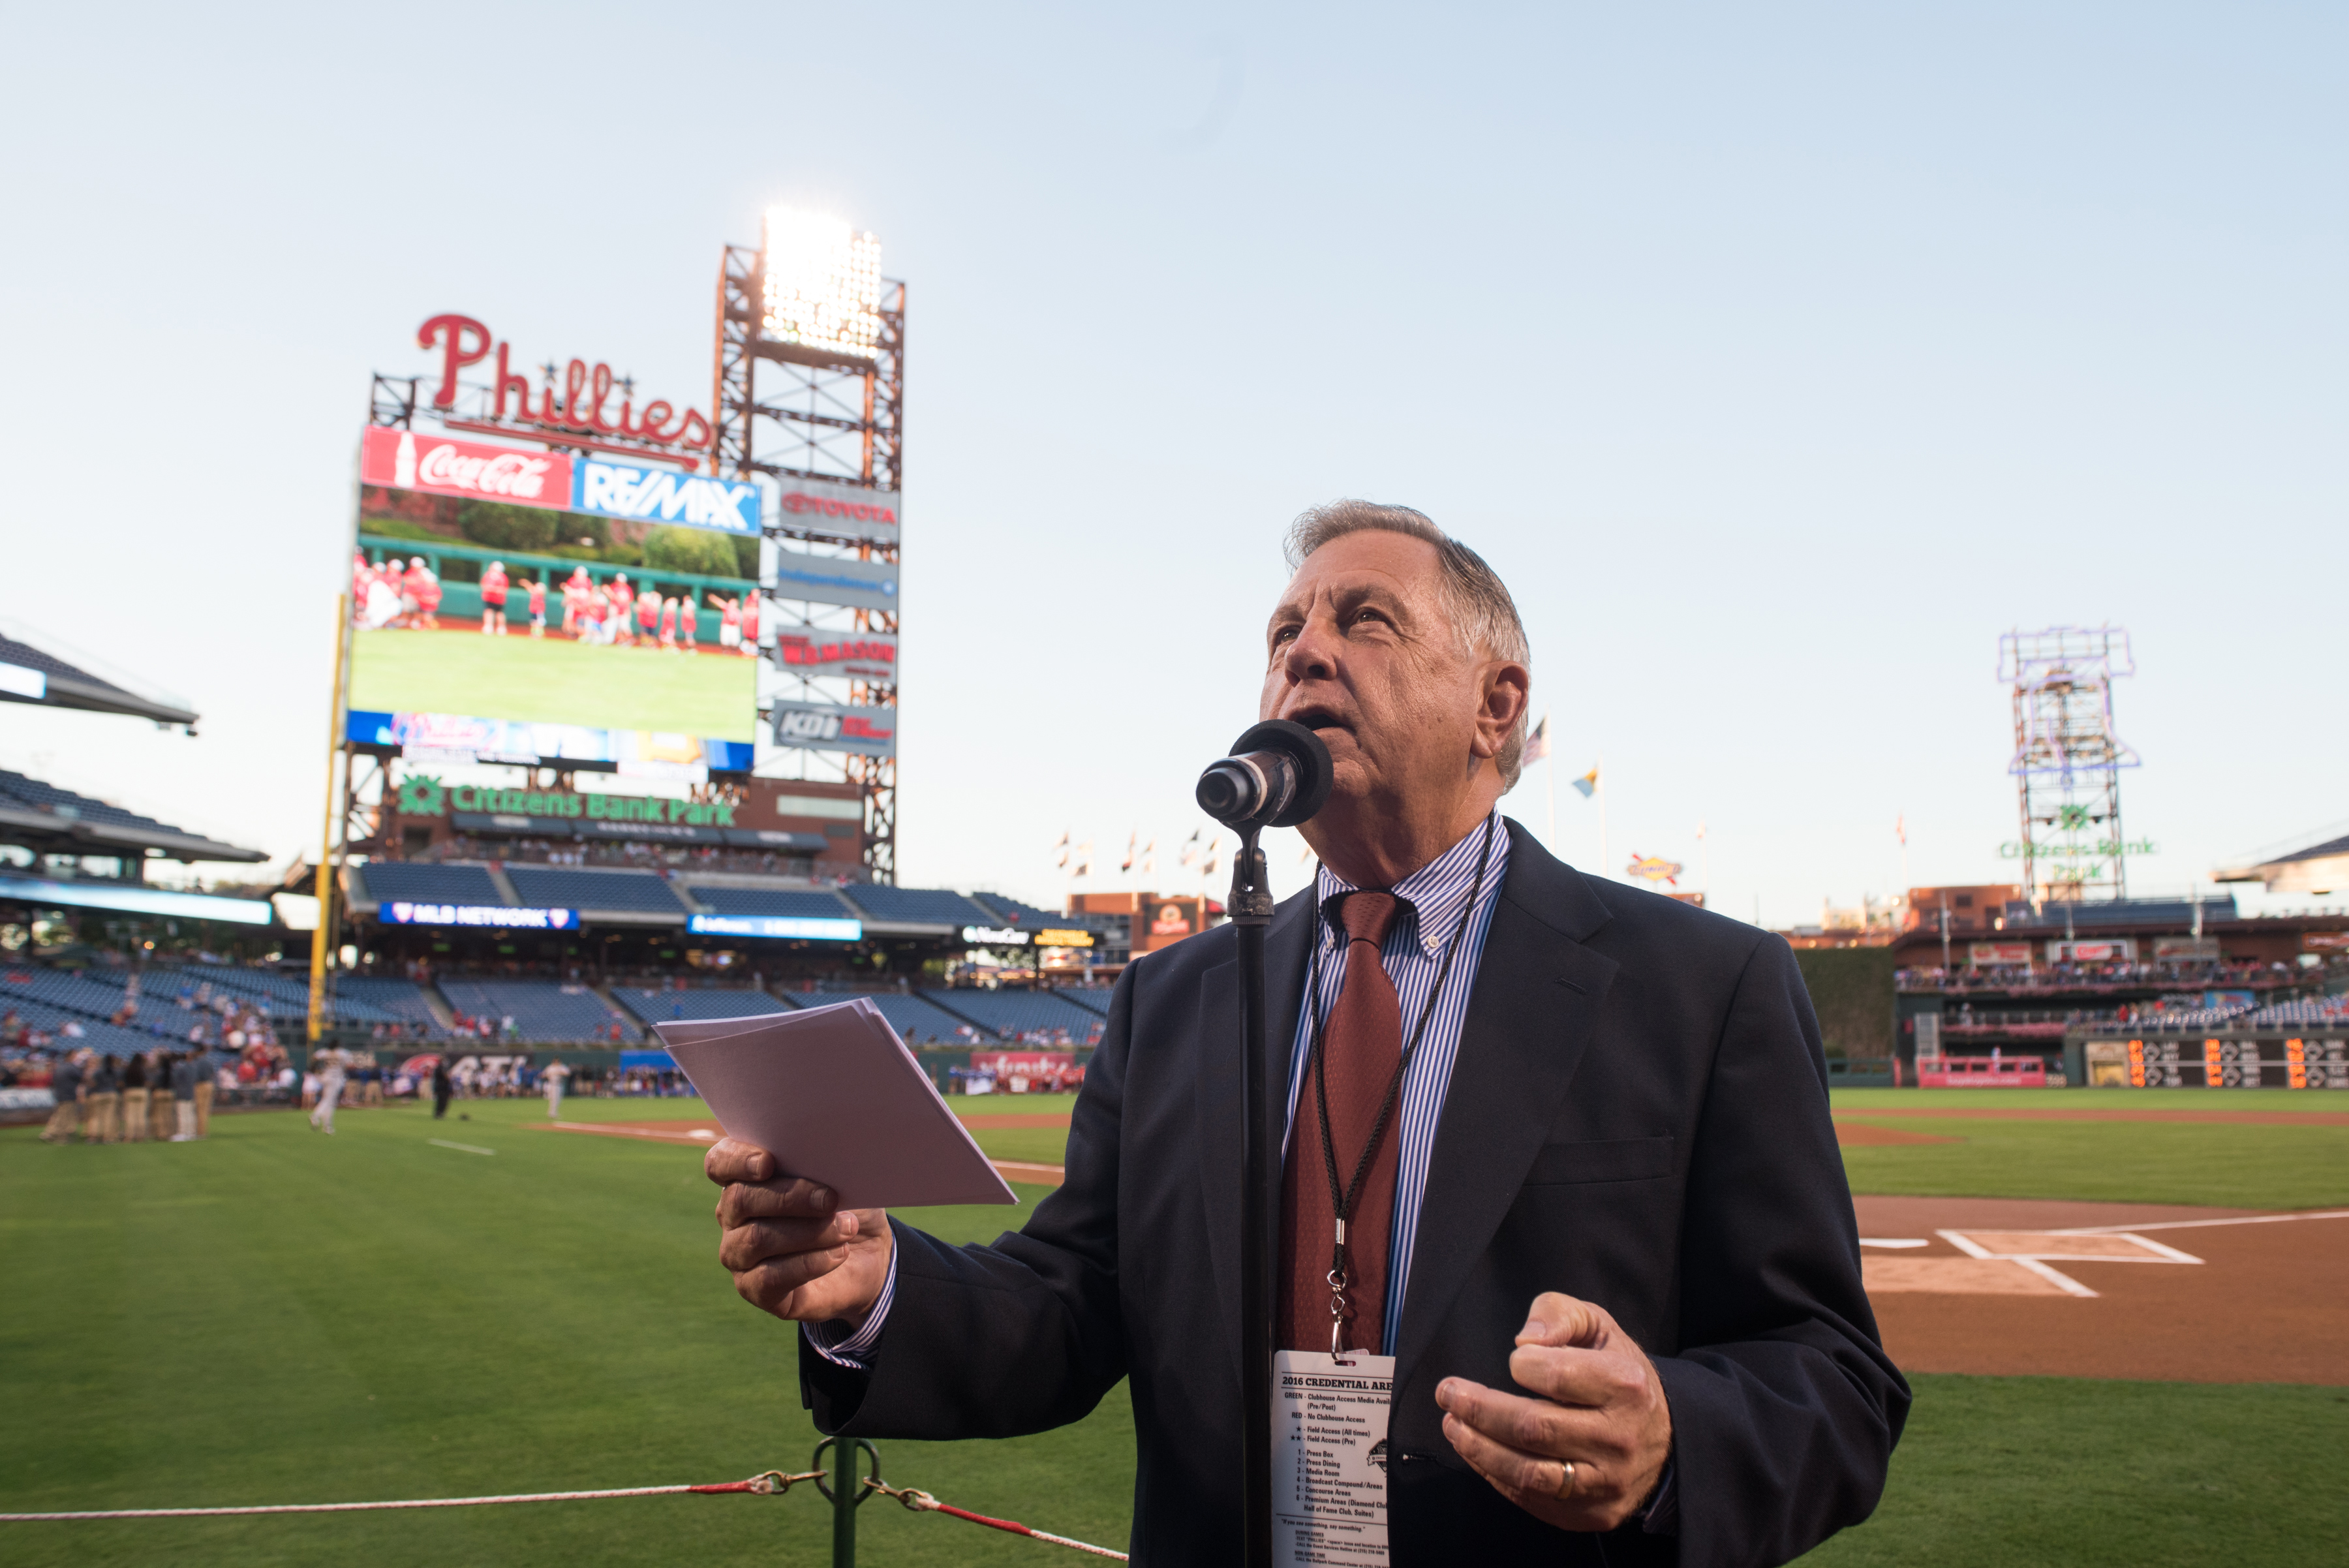 Become A Philadelphia Phillies StatementGames Fantasy Sports Contributor